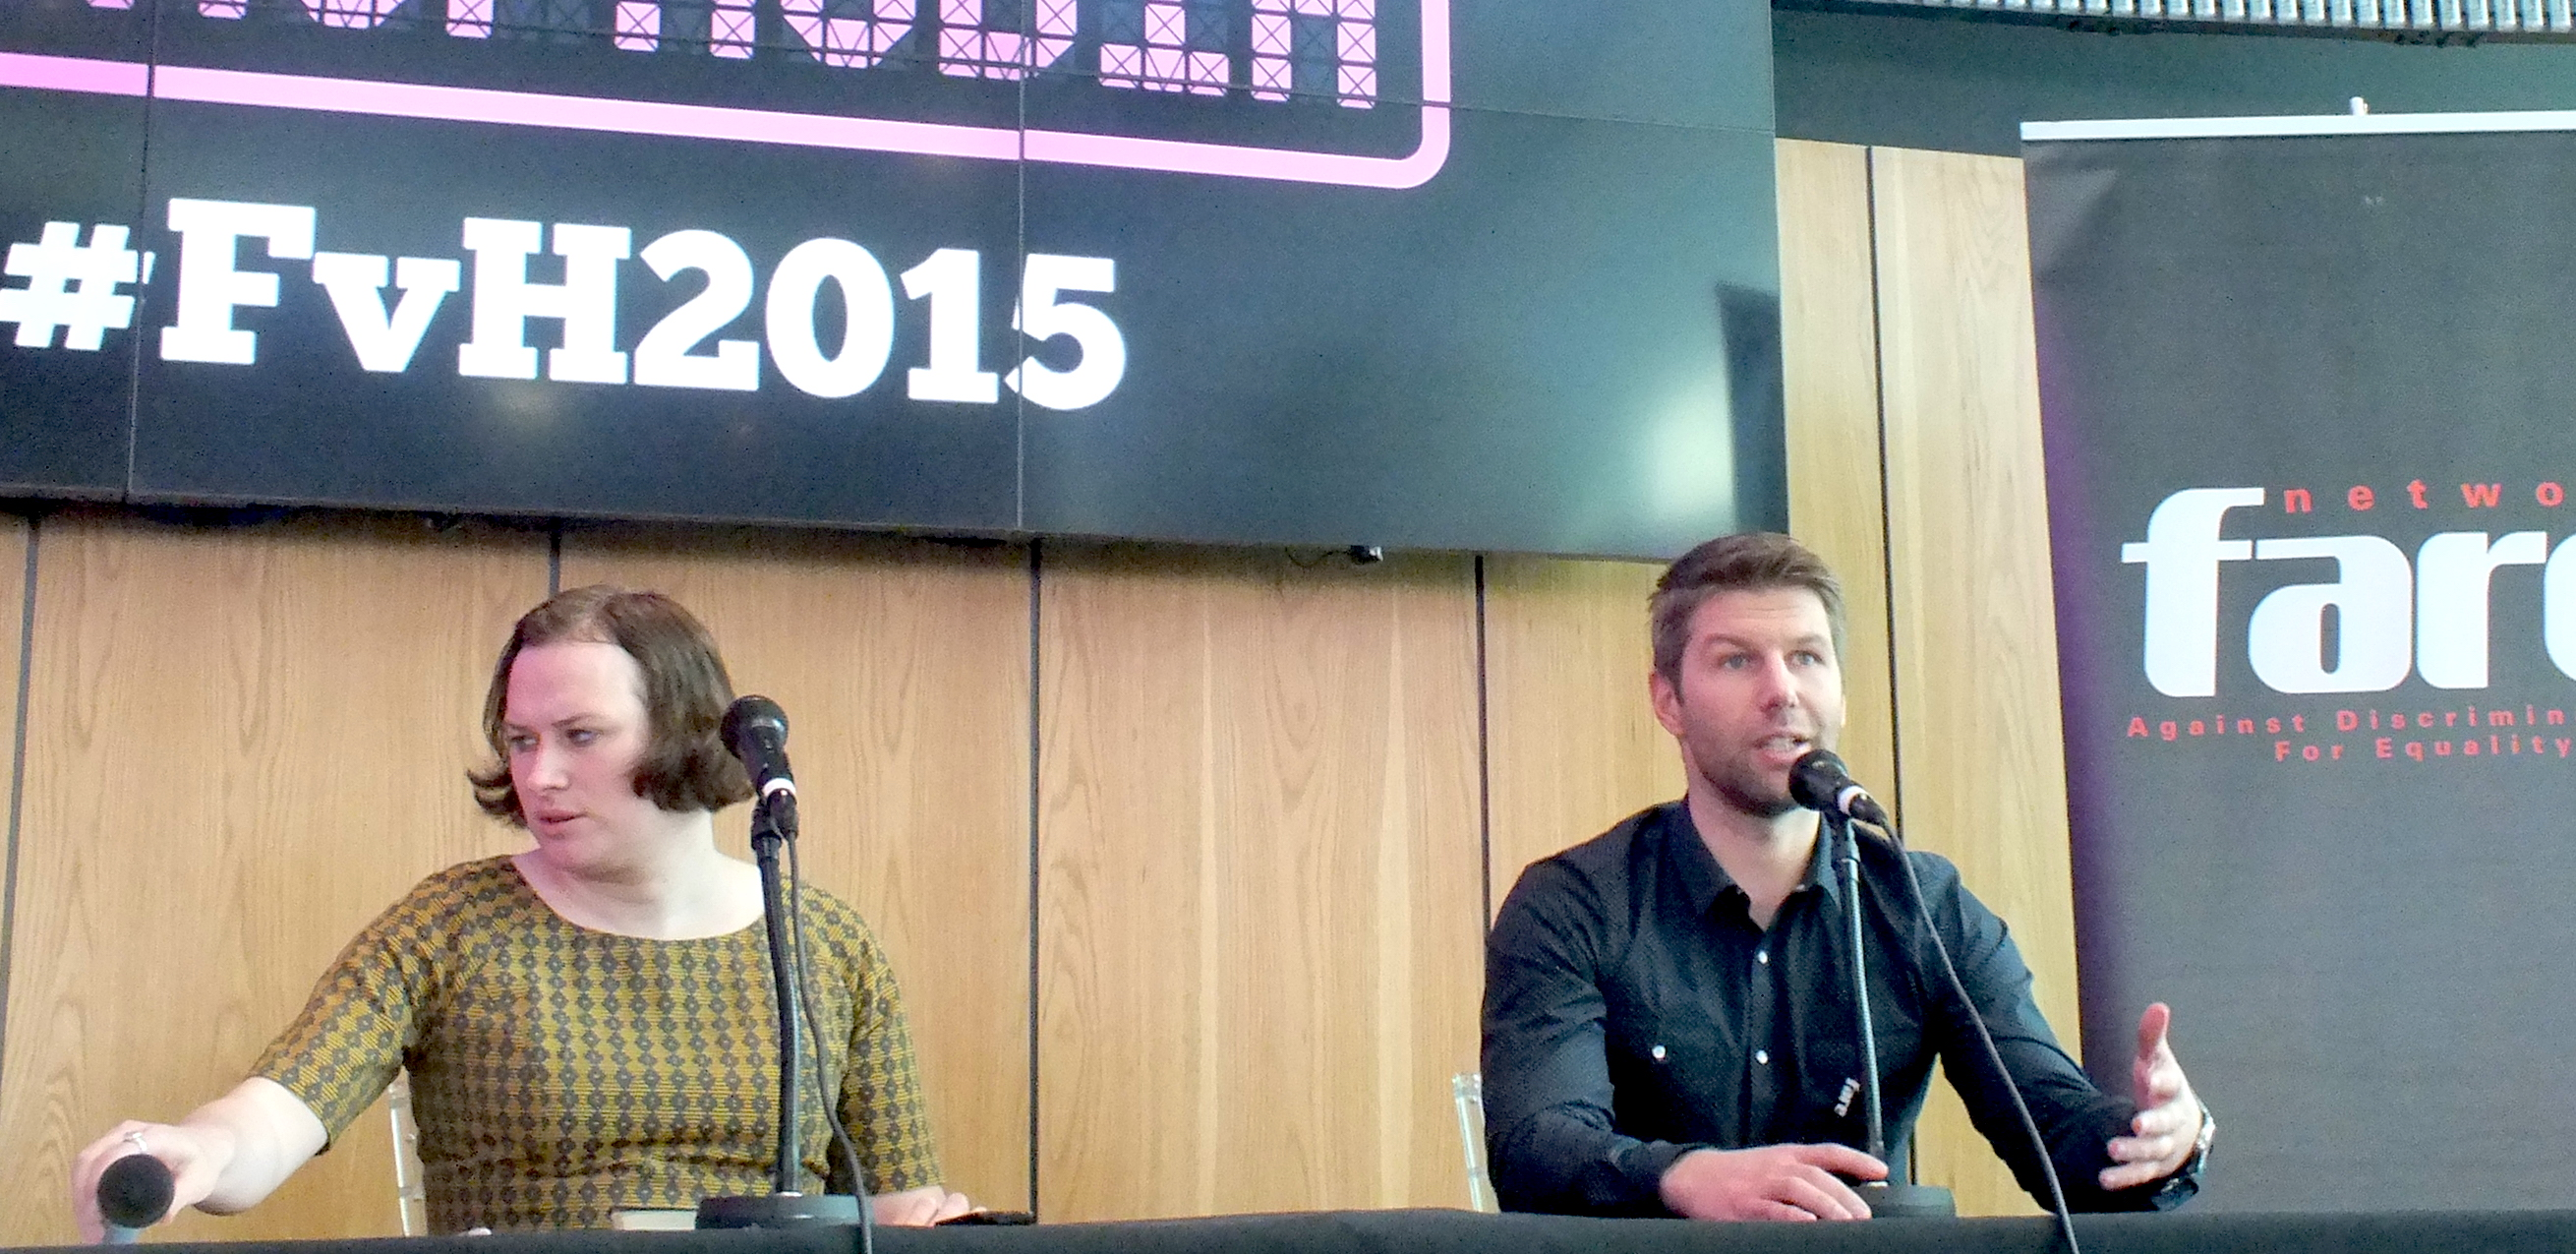 2015-02-15 FvH conf Manchester 38